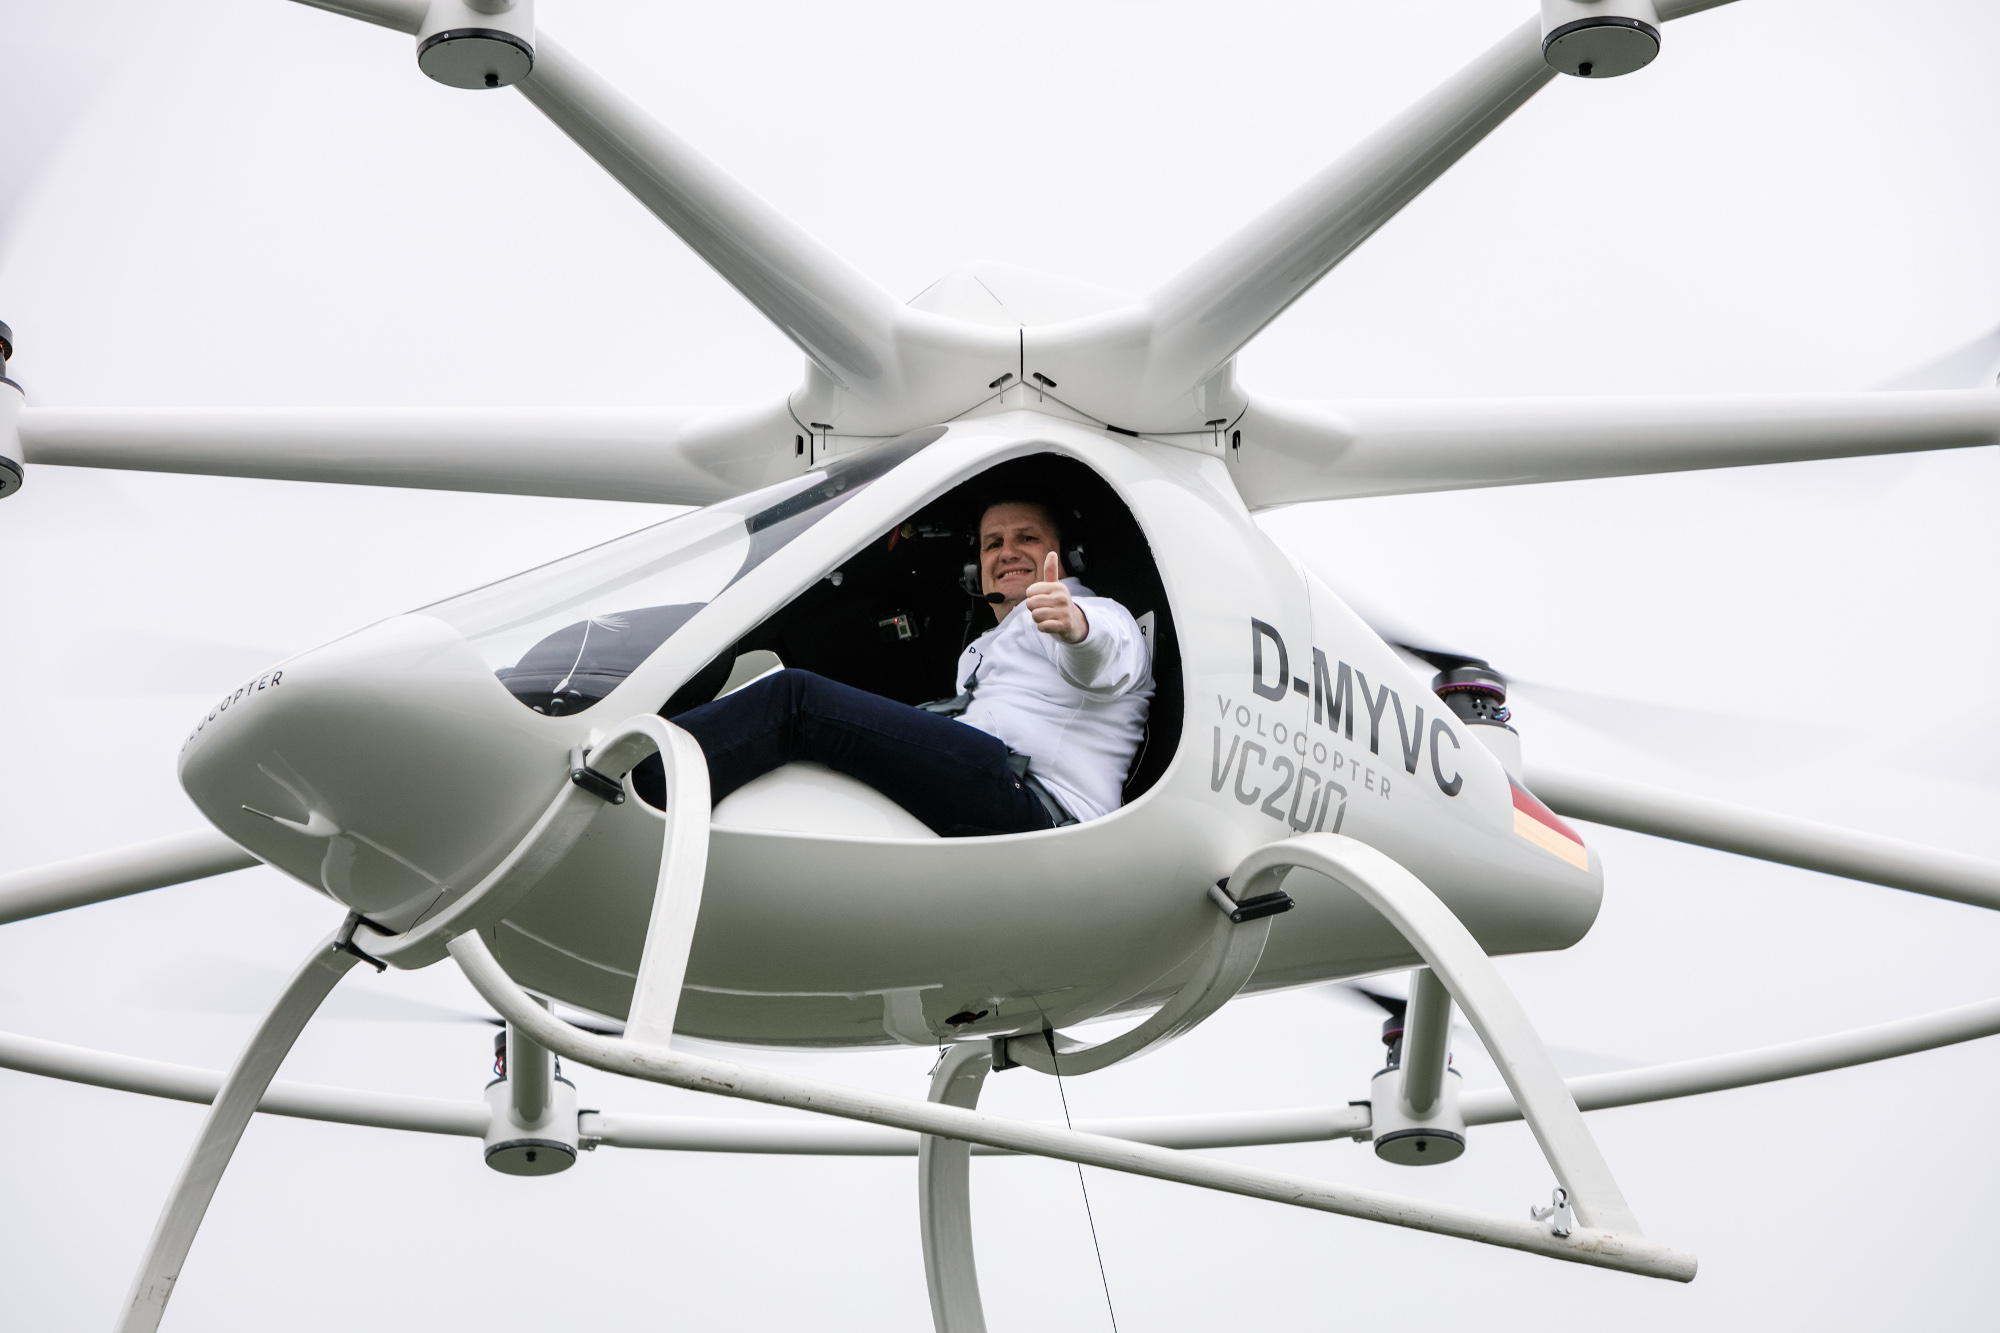 Volocopter's first manned flight